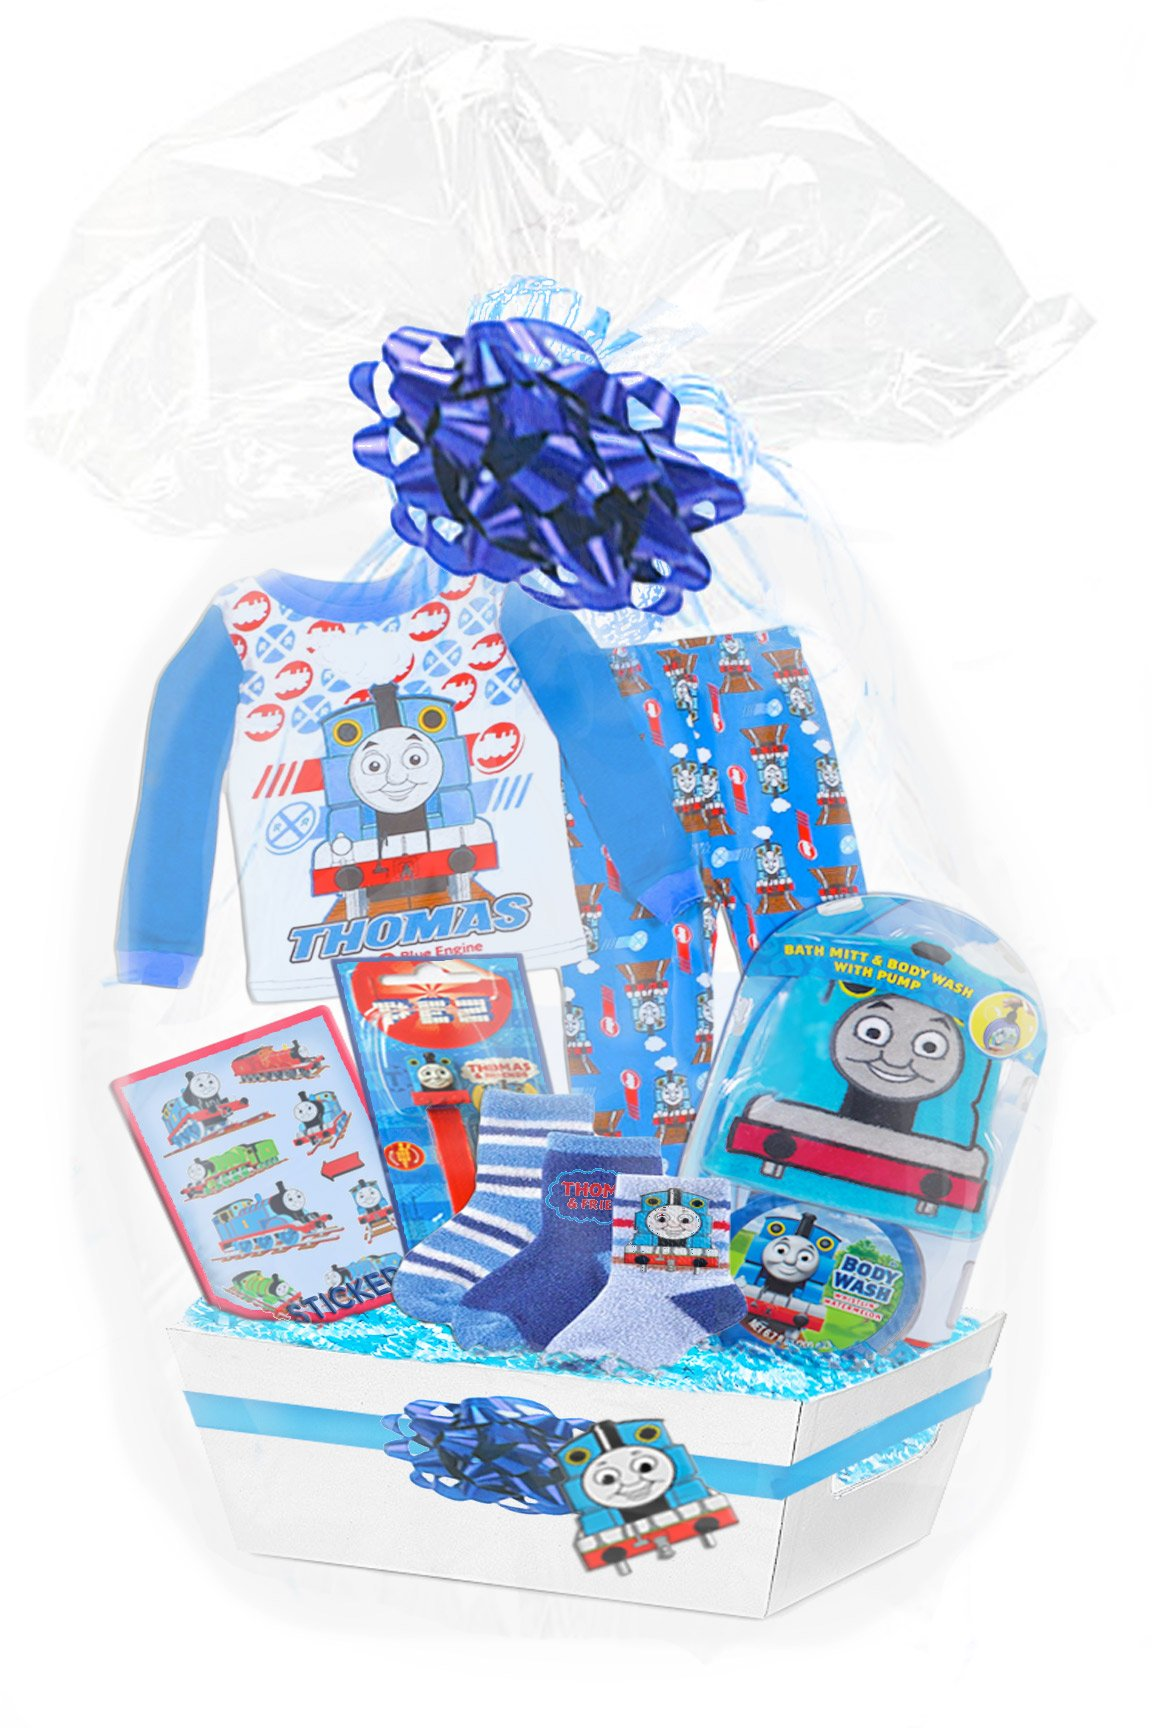 Baby Boutique Boy's ''Thomas The Train Ultimate 45 Piece Gift Basket,'' Featuring Thomas and Friends Pajamas, Bath Toy Set, Stickers, Socks, Pez Etc., Size: 24 month